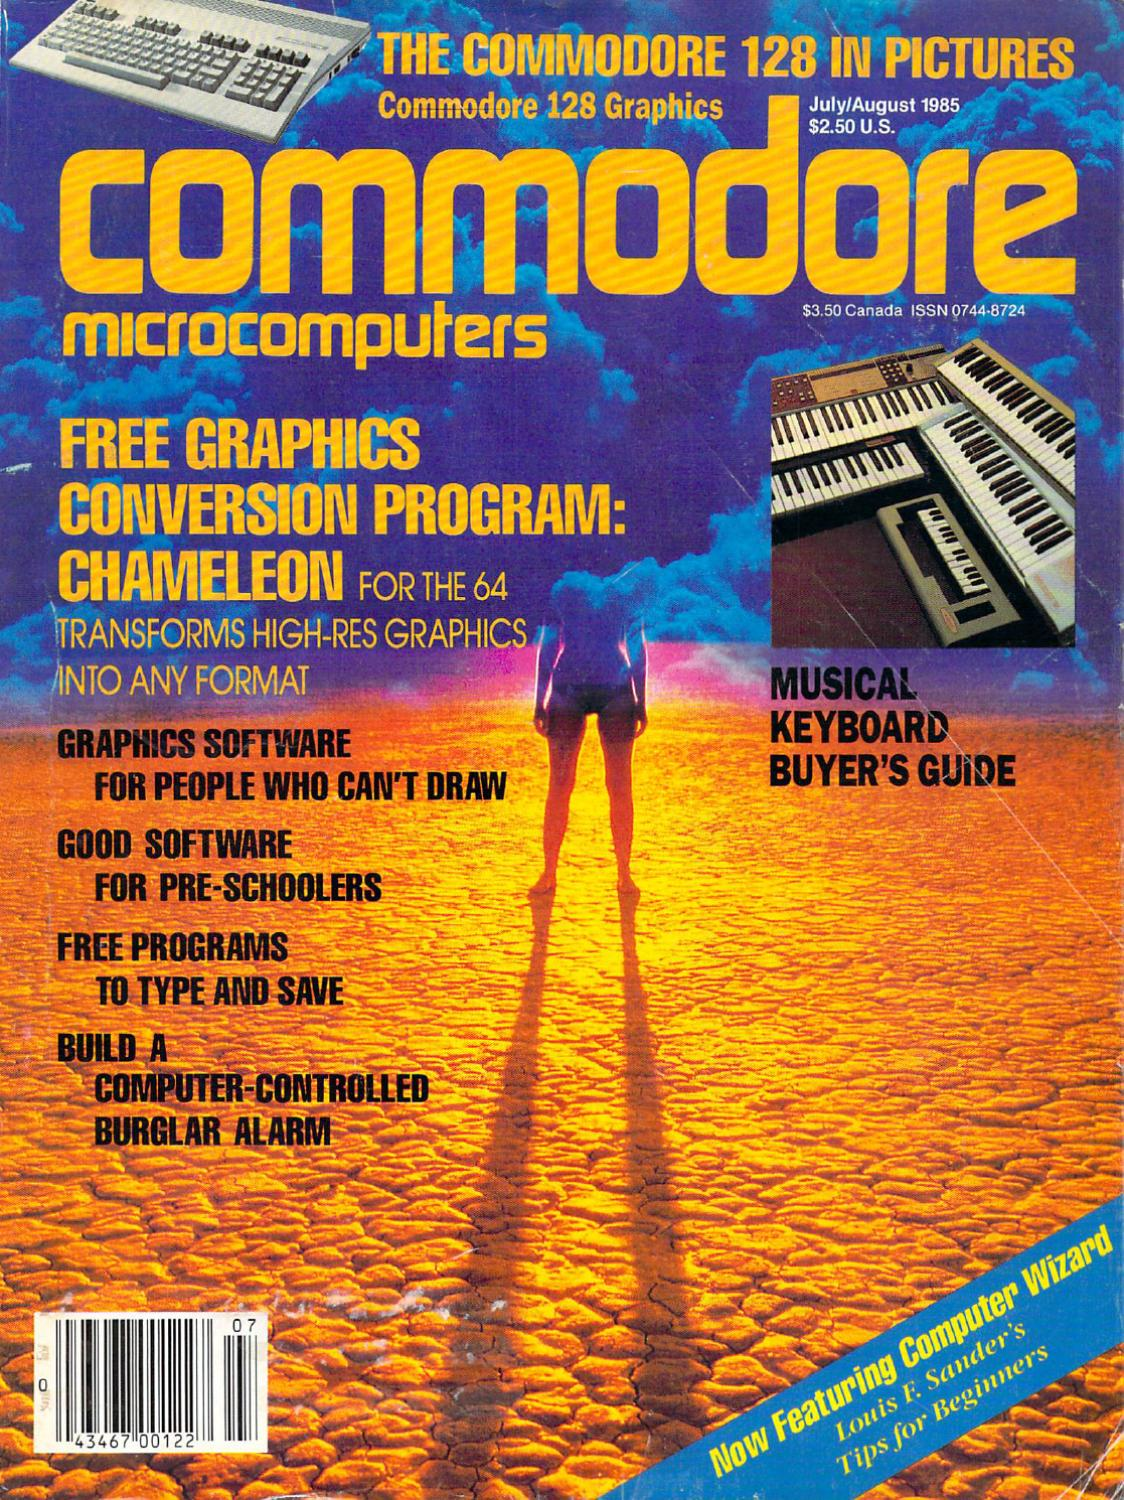 Commodore Microcomputer Issue 36 1985 Jul Aug By Zetmoon Issuu Tutorial Wiring Turn Signal Lights For Dummies 5784